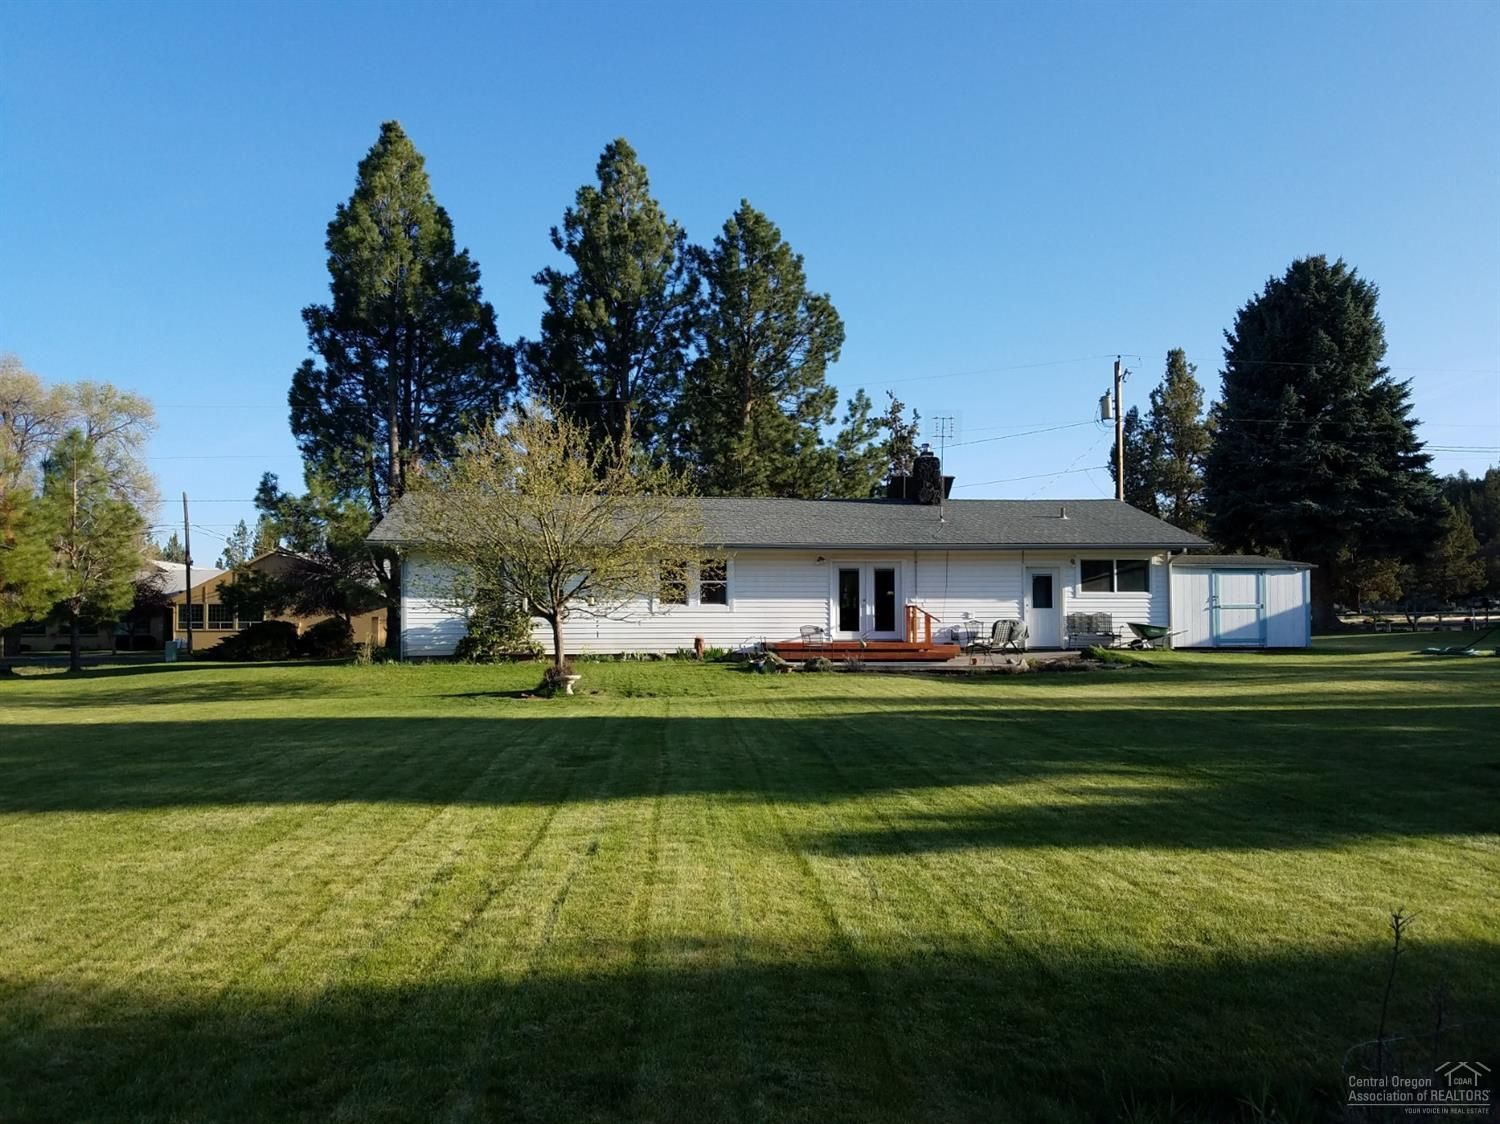 19816 2nd St, Bend, OR 97703 - 3 Bed, 2 Bath Single-Family Home - MLS  #201903589 - 19 Photos | Trulia